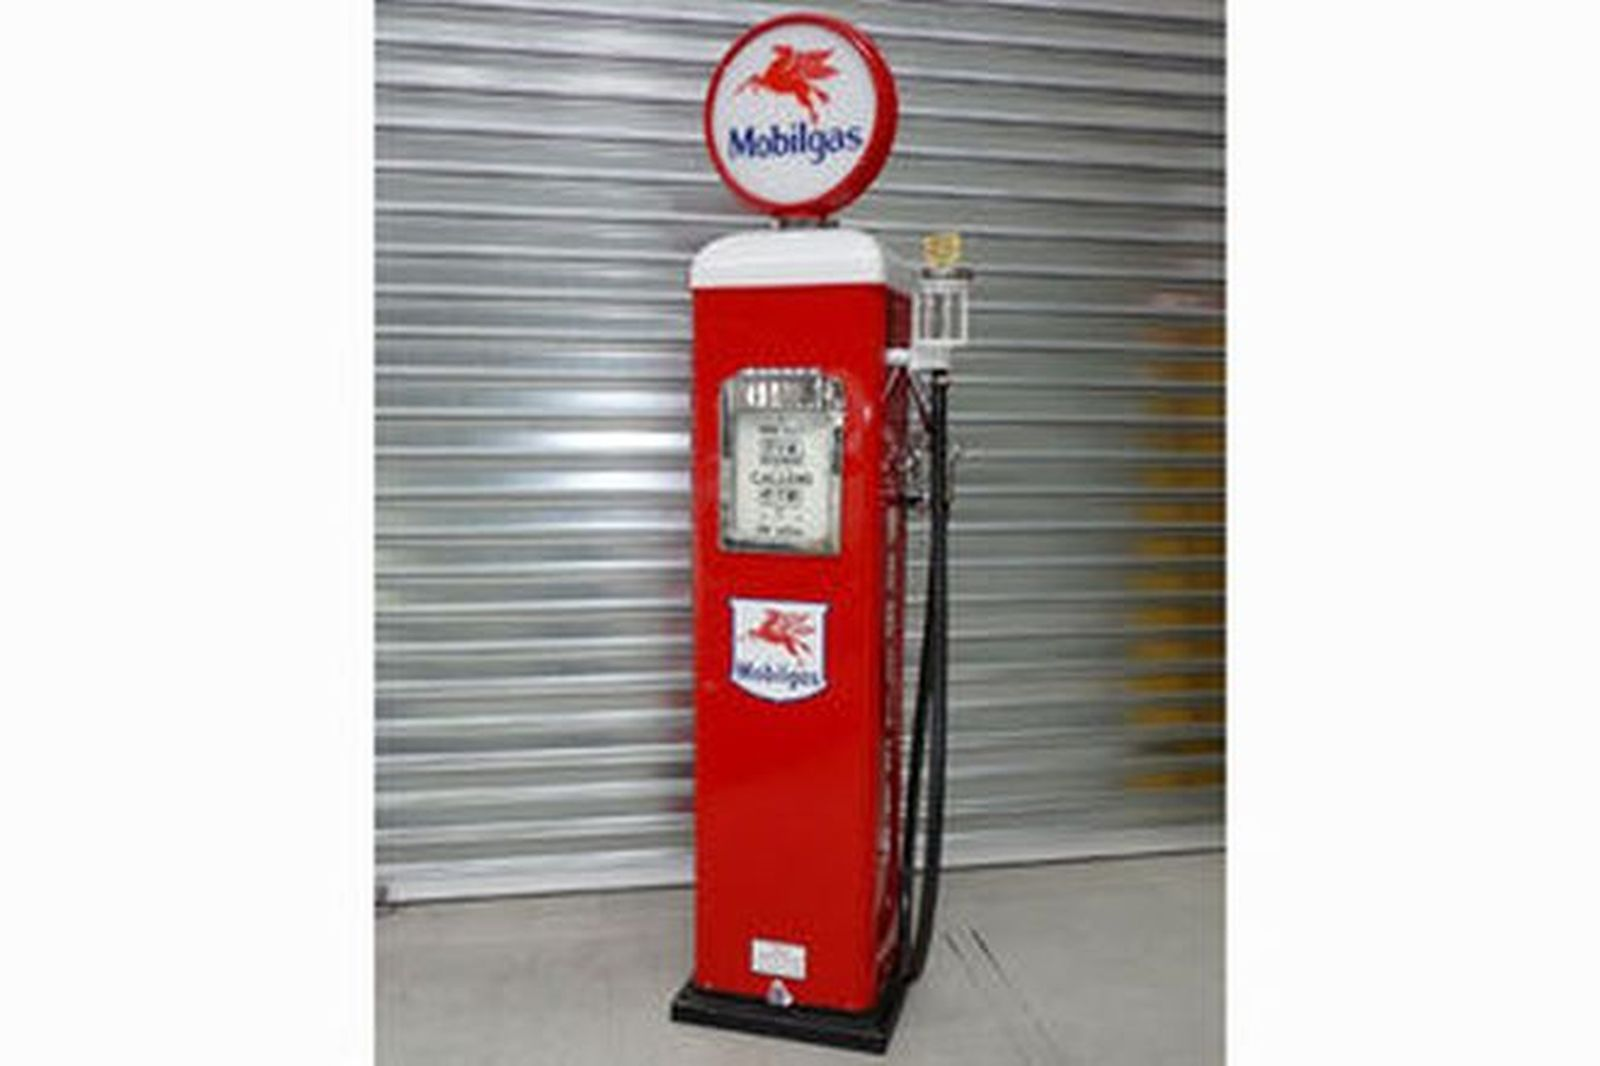 Petrol Pump - Gilbarco Electric in Mobilgas Livery (Restored)